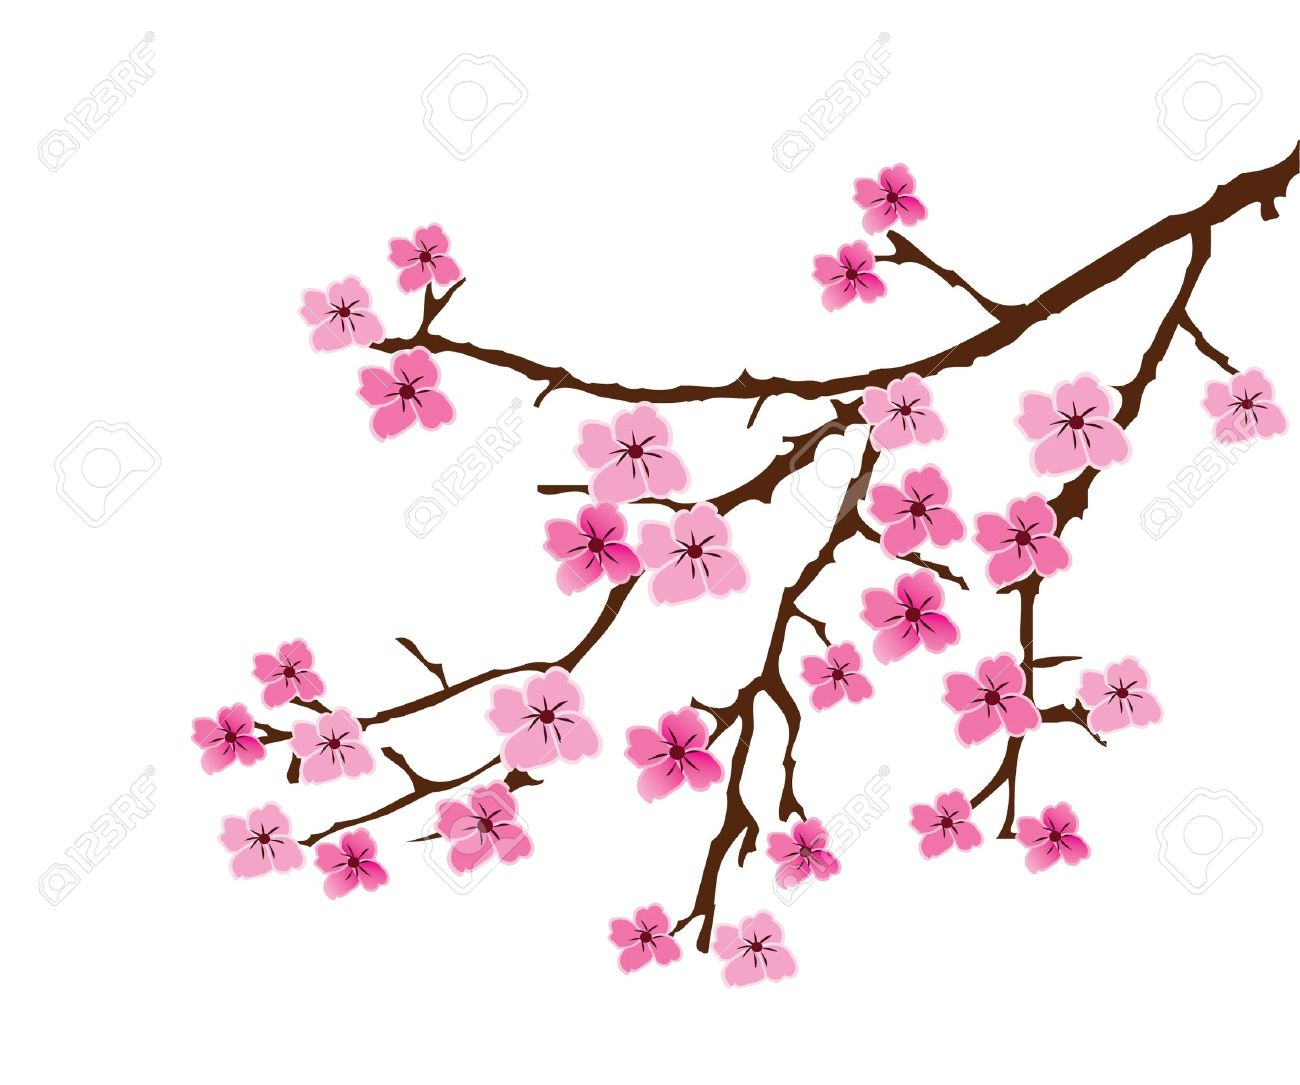 vector floral branch royalty free cliparts vectors and stock rh 123rf com cherry blossom vector art cherry blossom vector art